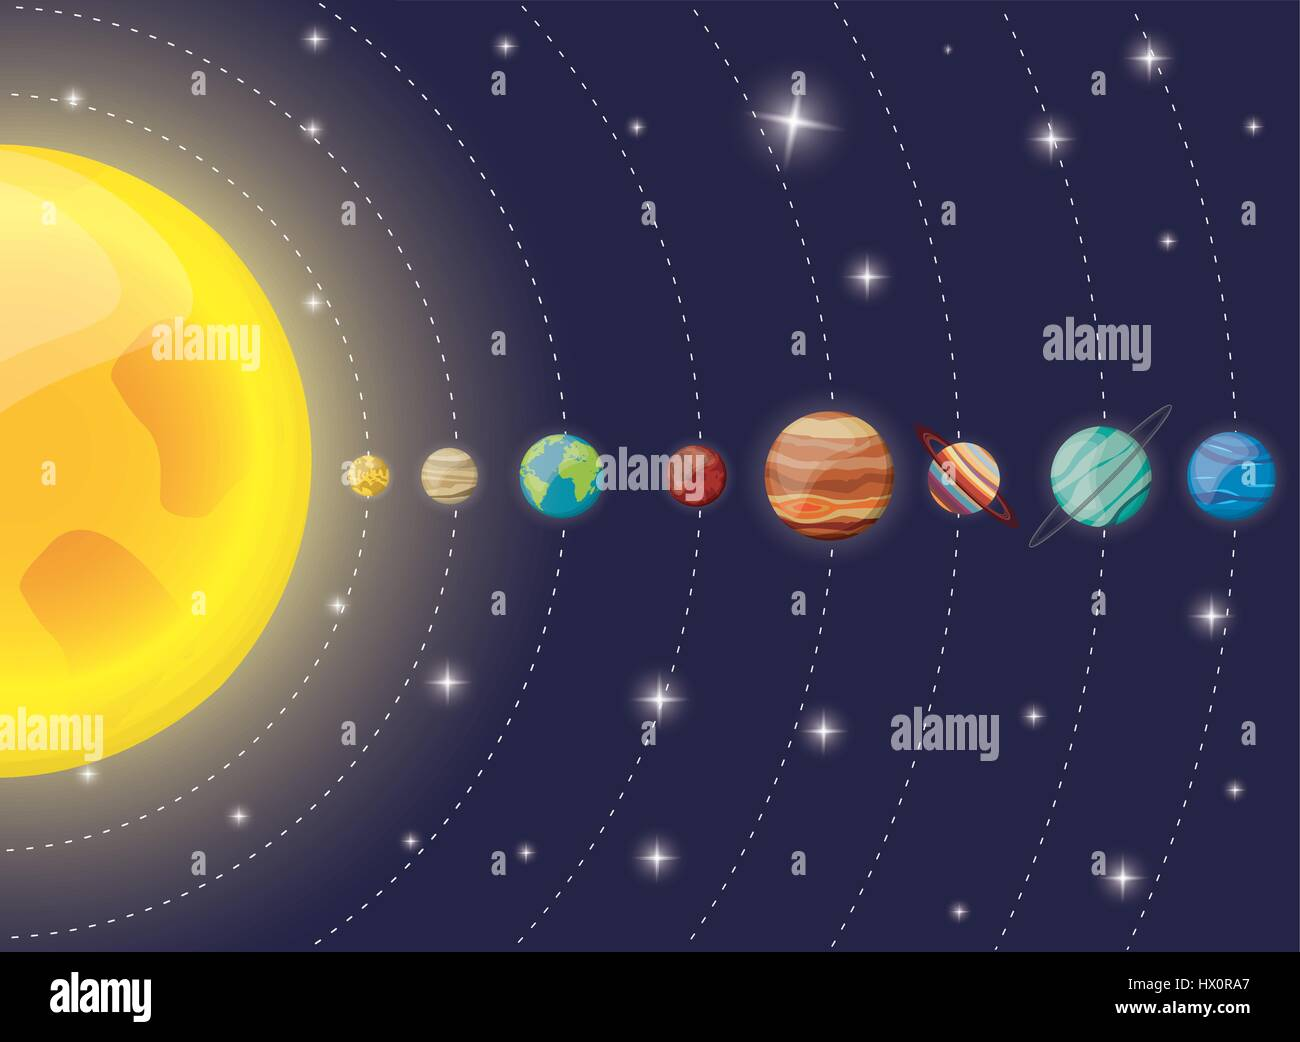 Solar System Planets Sun Diagram Stock Vector Art Amp Illustration Vector Image